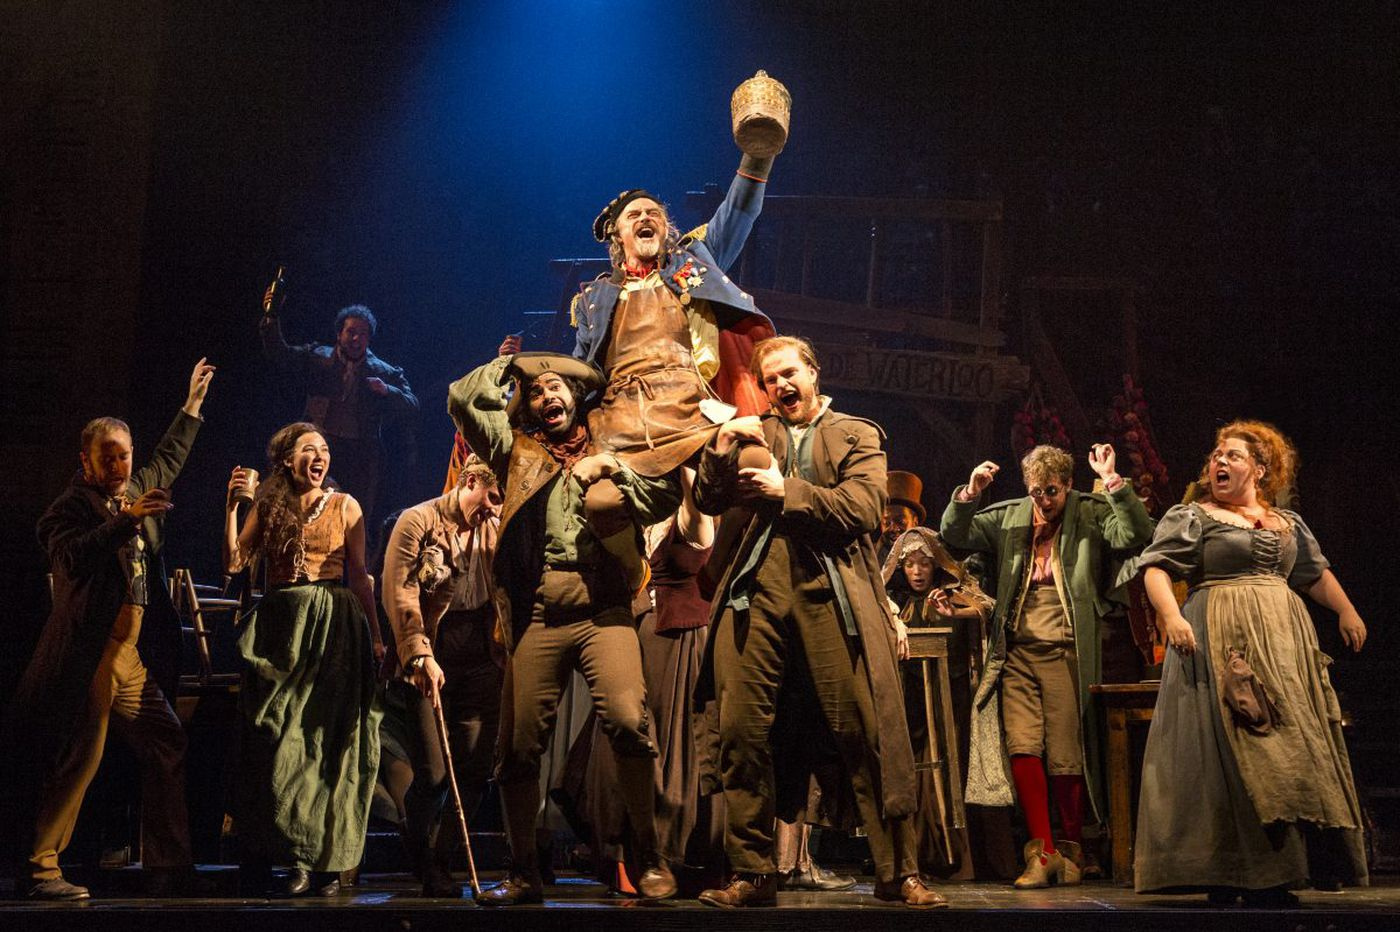 Les Misérables, Springsteen's buddy and more things to do in Philadelphia, Jan. 5-11